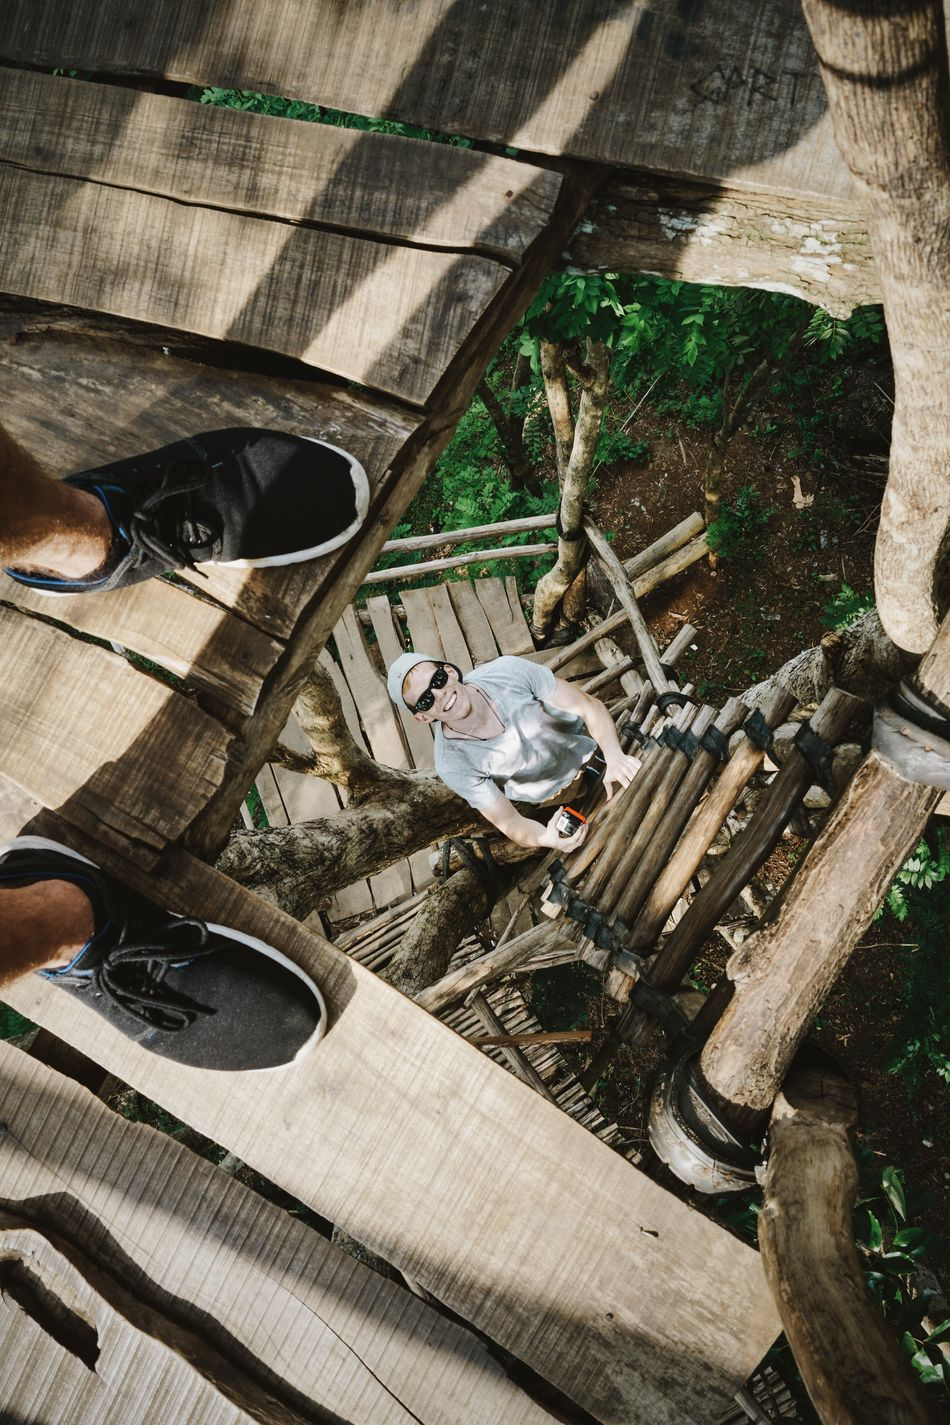 Exploring Jogja's surroundings Pine Forest Climbing Wooden Platform Man Smiling Sunglasses From My Point Of View Black Shoes Grey T-shirt Looking Down Feet Wood Wooden Planks Forest INDONESIA Java Traveling Adventure My Year My View